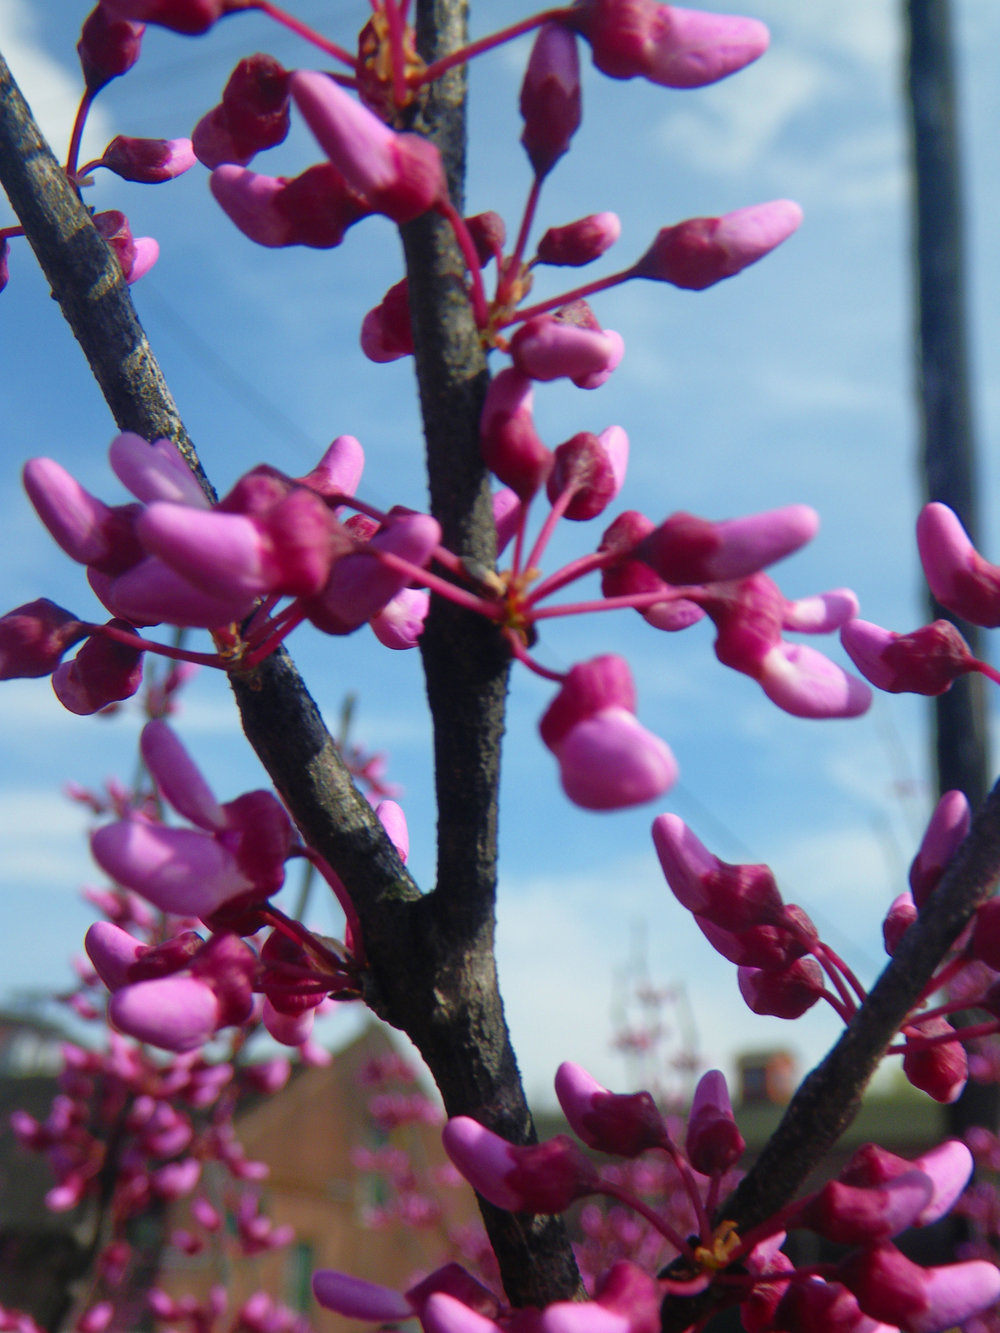 Redbud with blackened stems